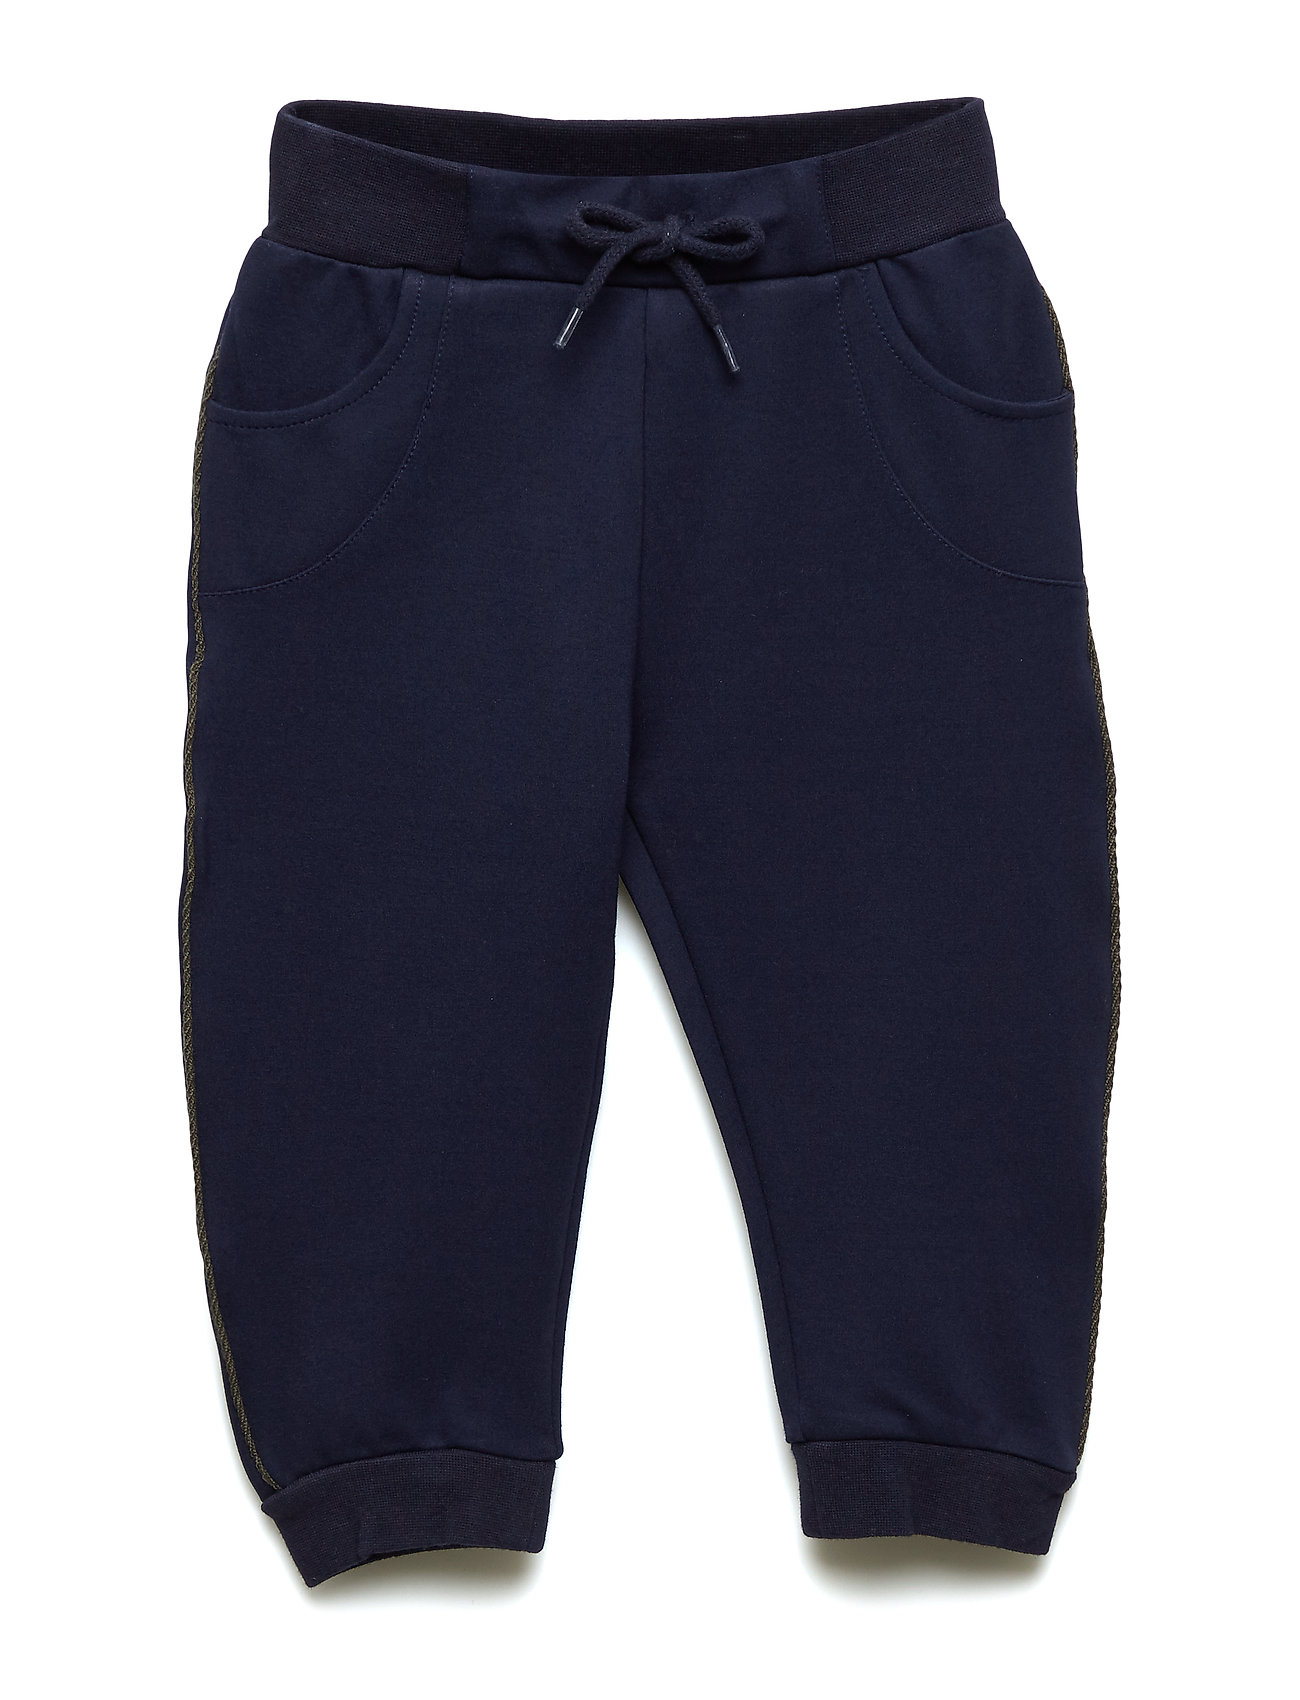 Mini A Ture Isak Pants, M - CARBON